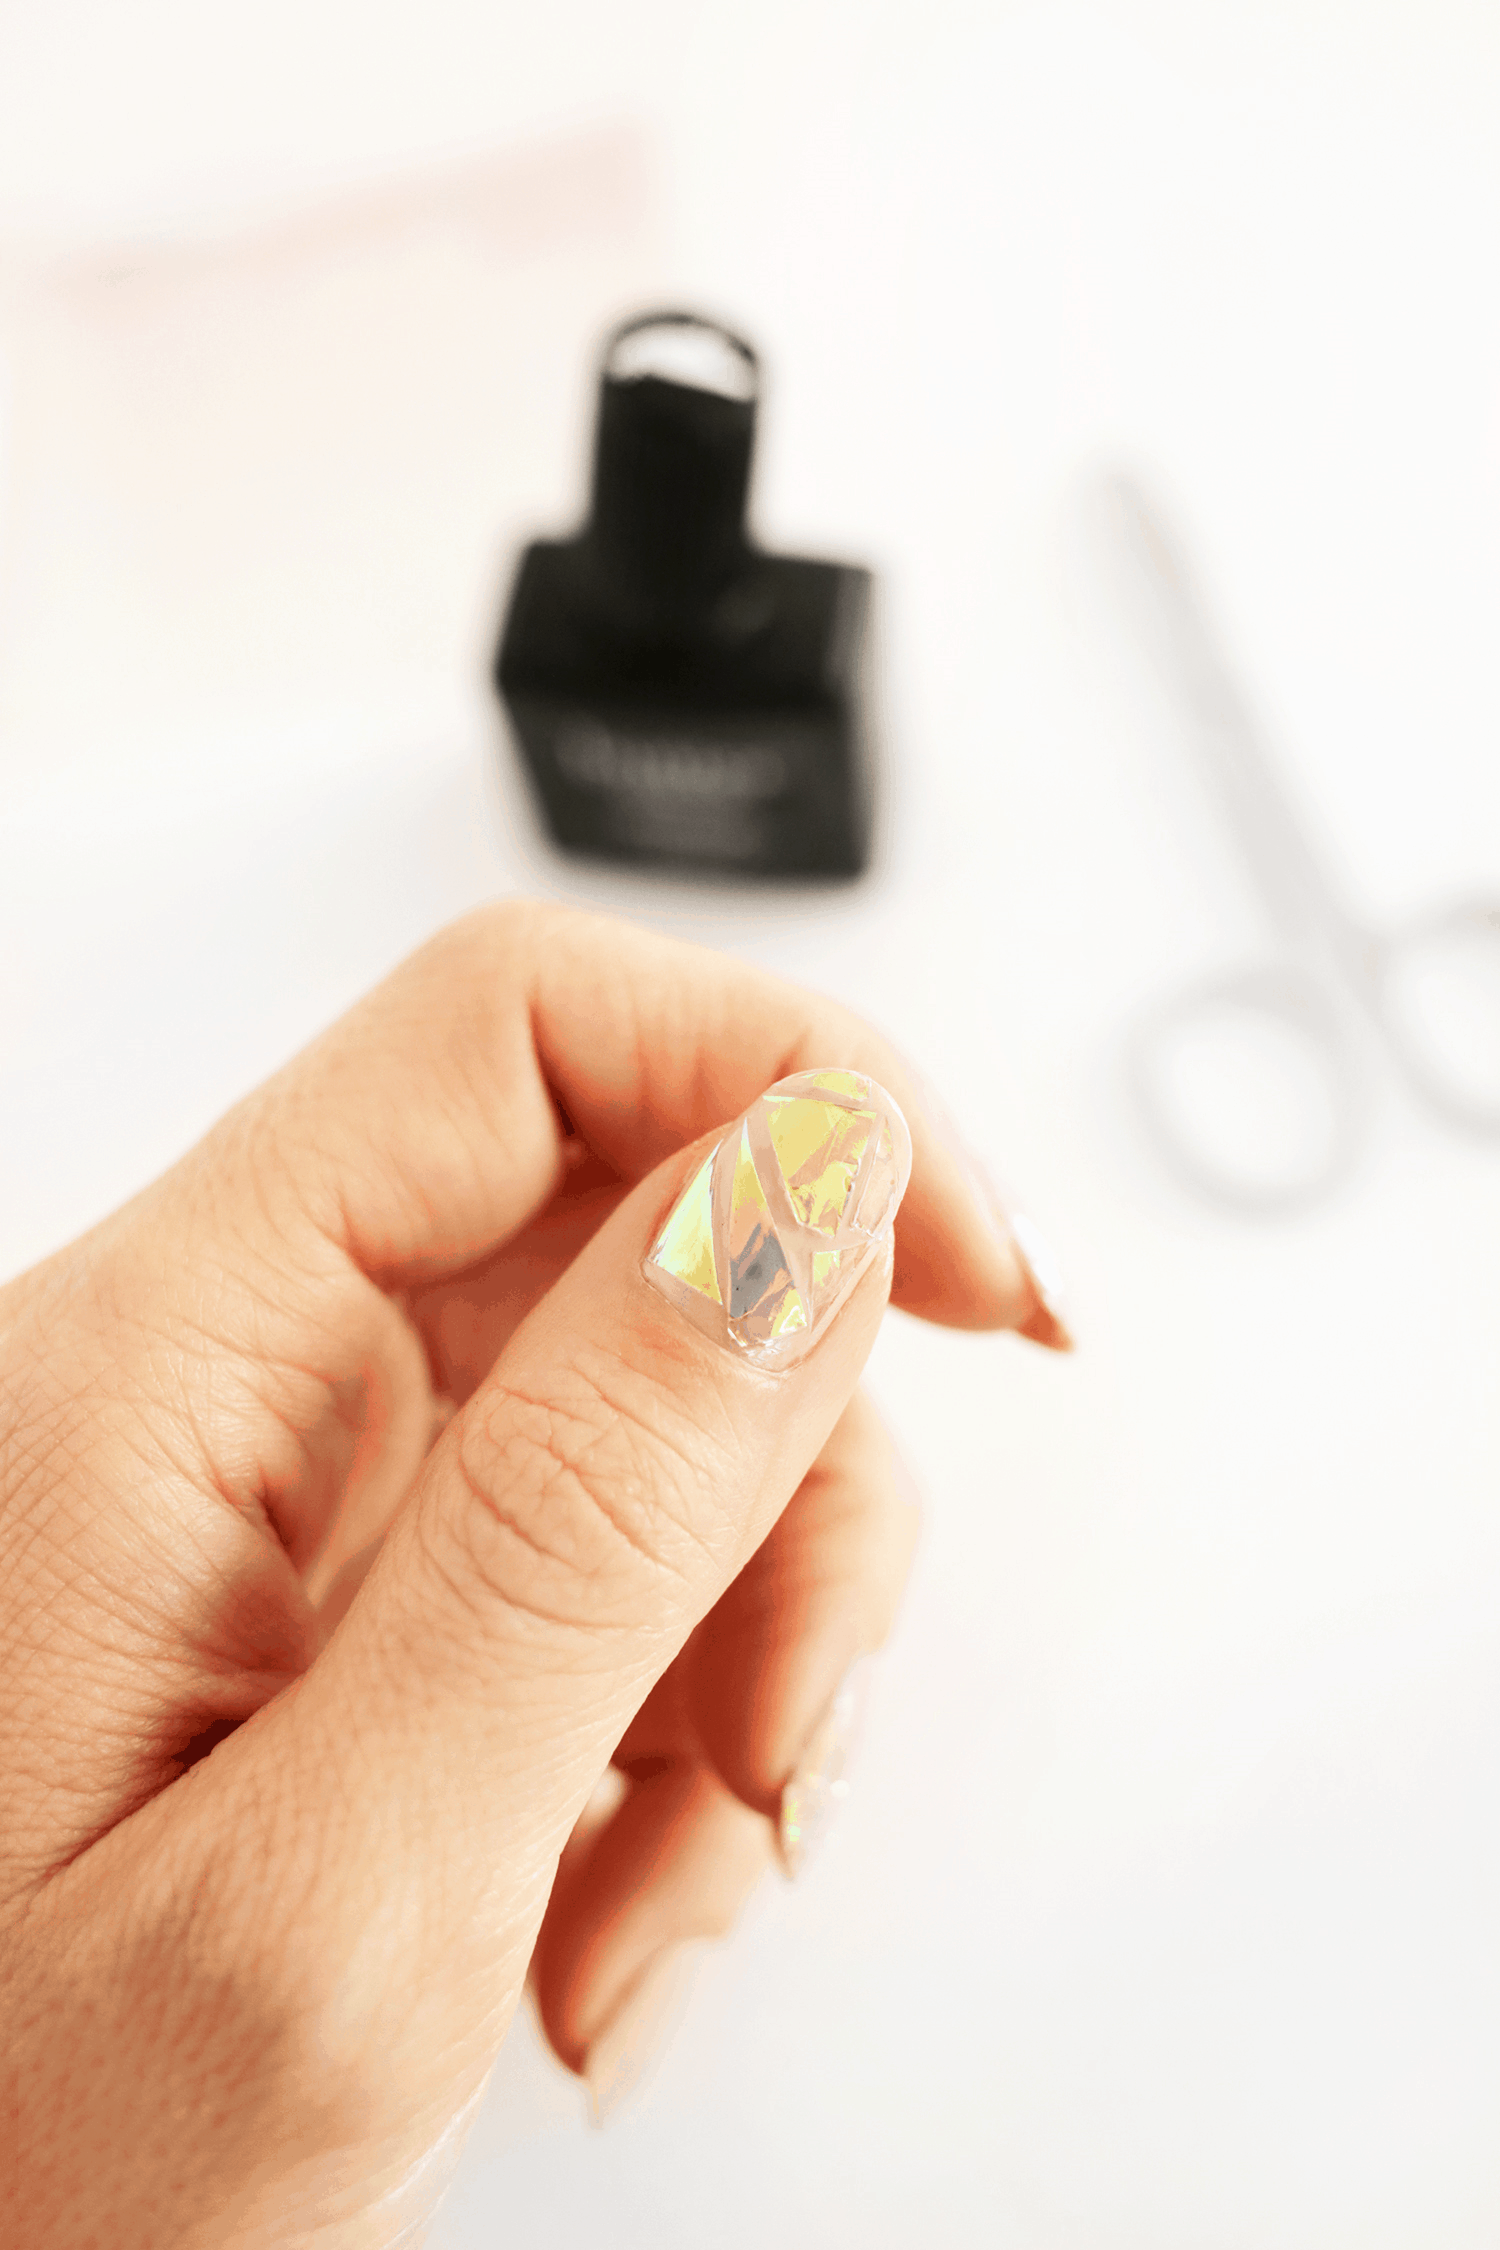 Holographic foil shattered glass nails